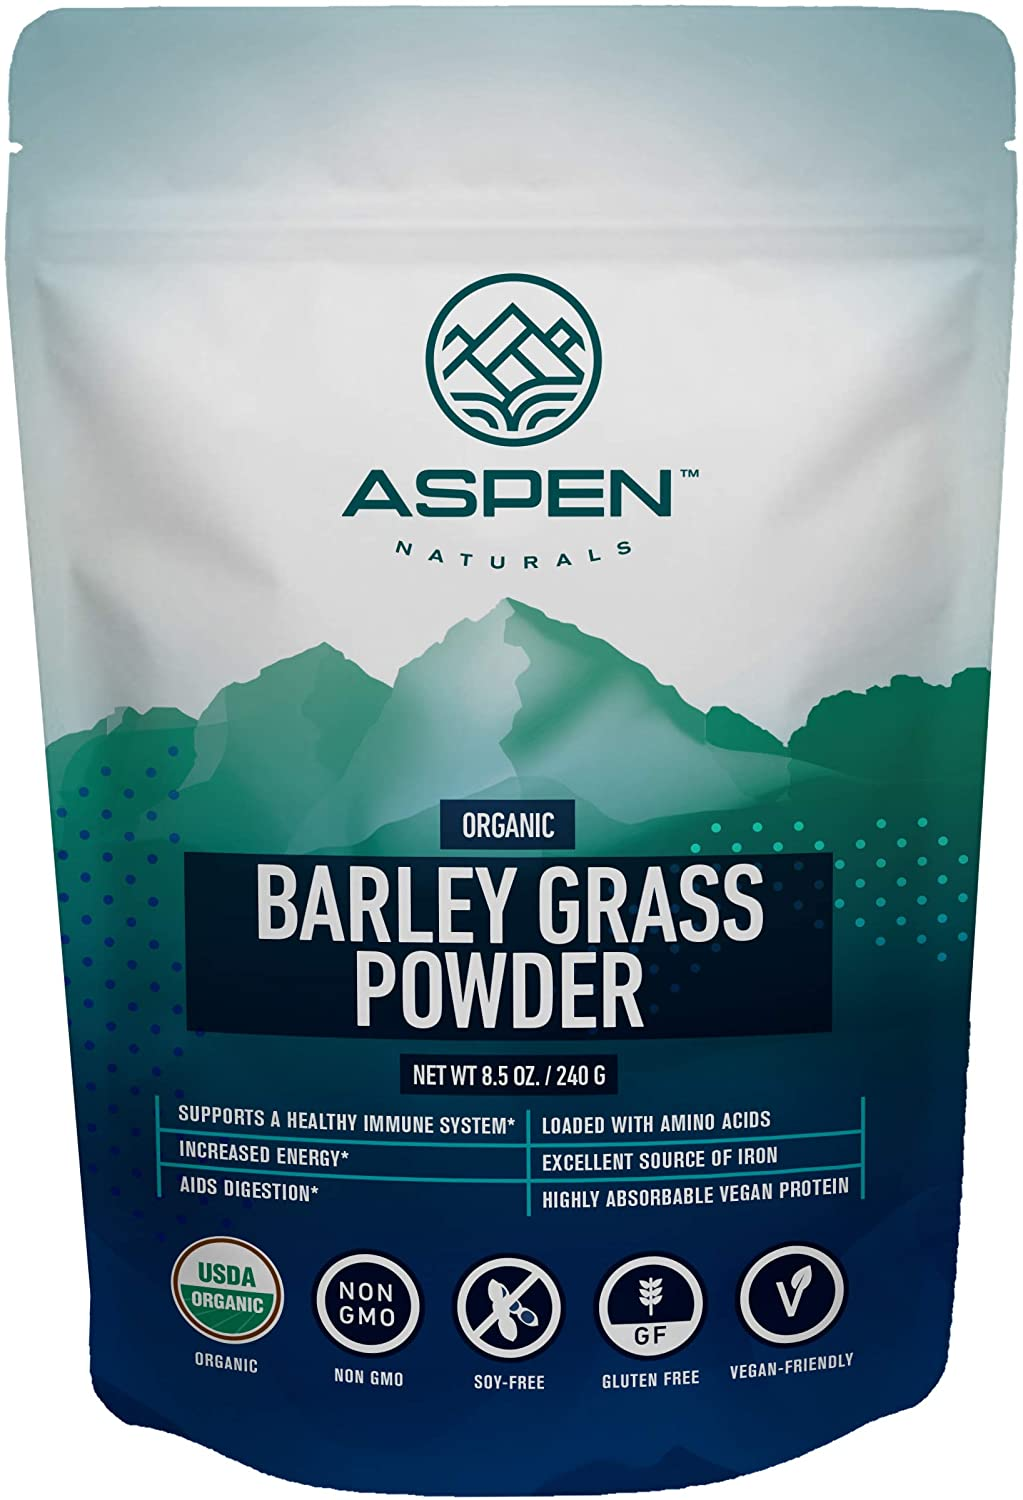 Aspen Naturals Organic Barley Grass Powder - USA Grown, Premium Superfood. Supports a Healthy Immune System and is Rich in Amino Acids, Vitamins, Chlorophyll. Add to Juice, Smoothies & More